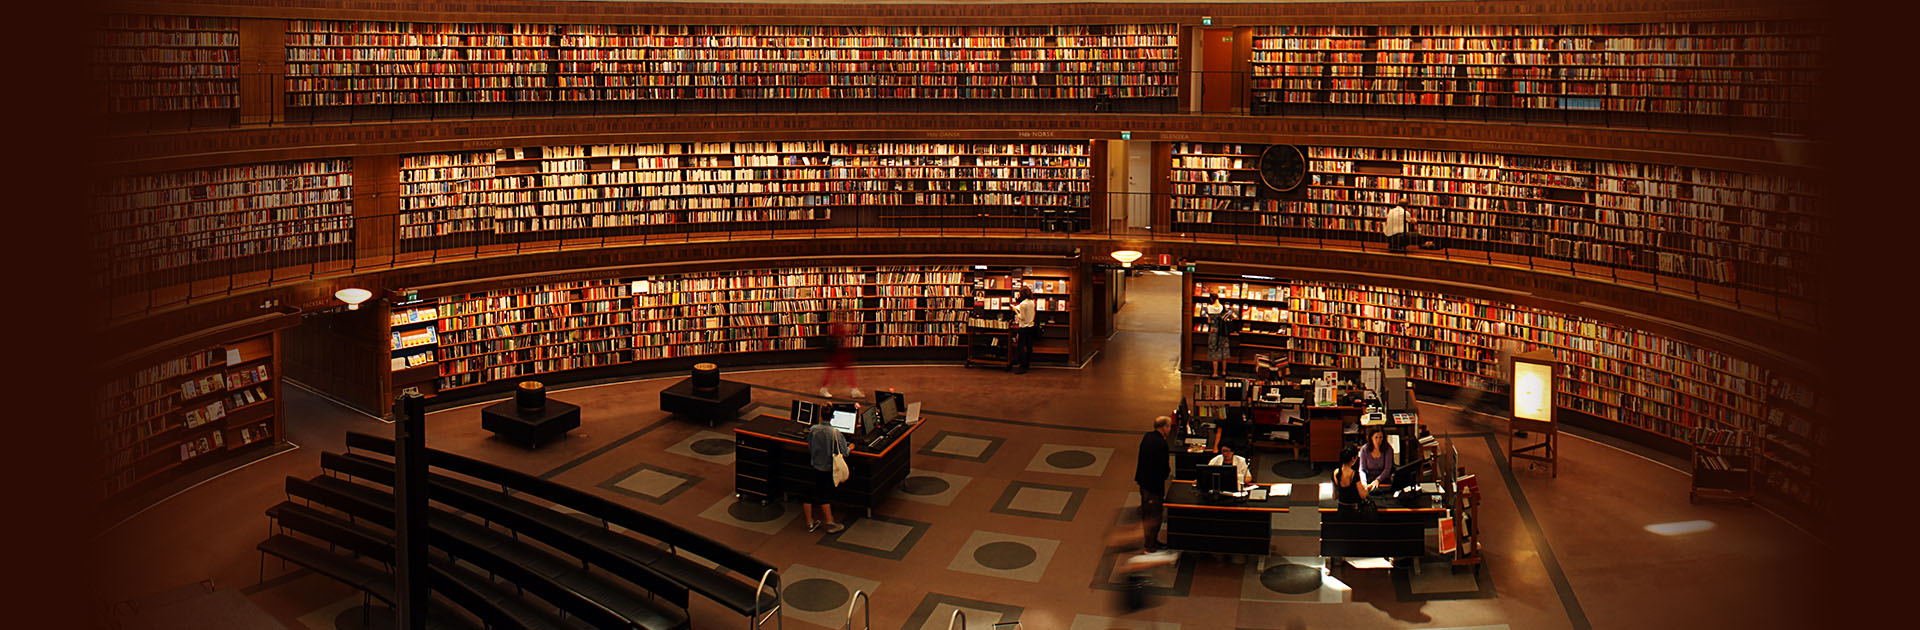 Inside a library with many books